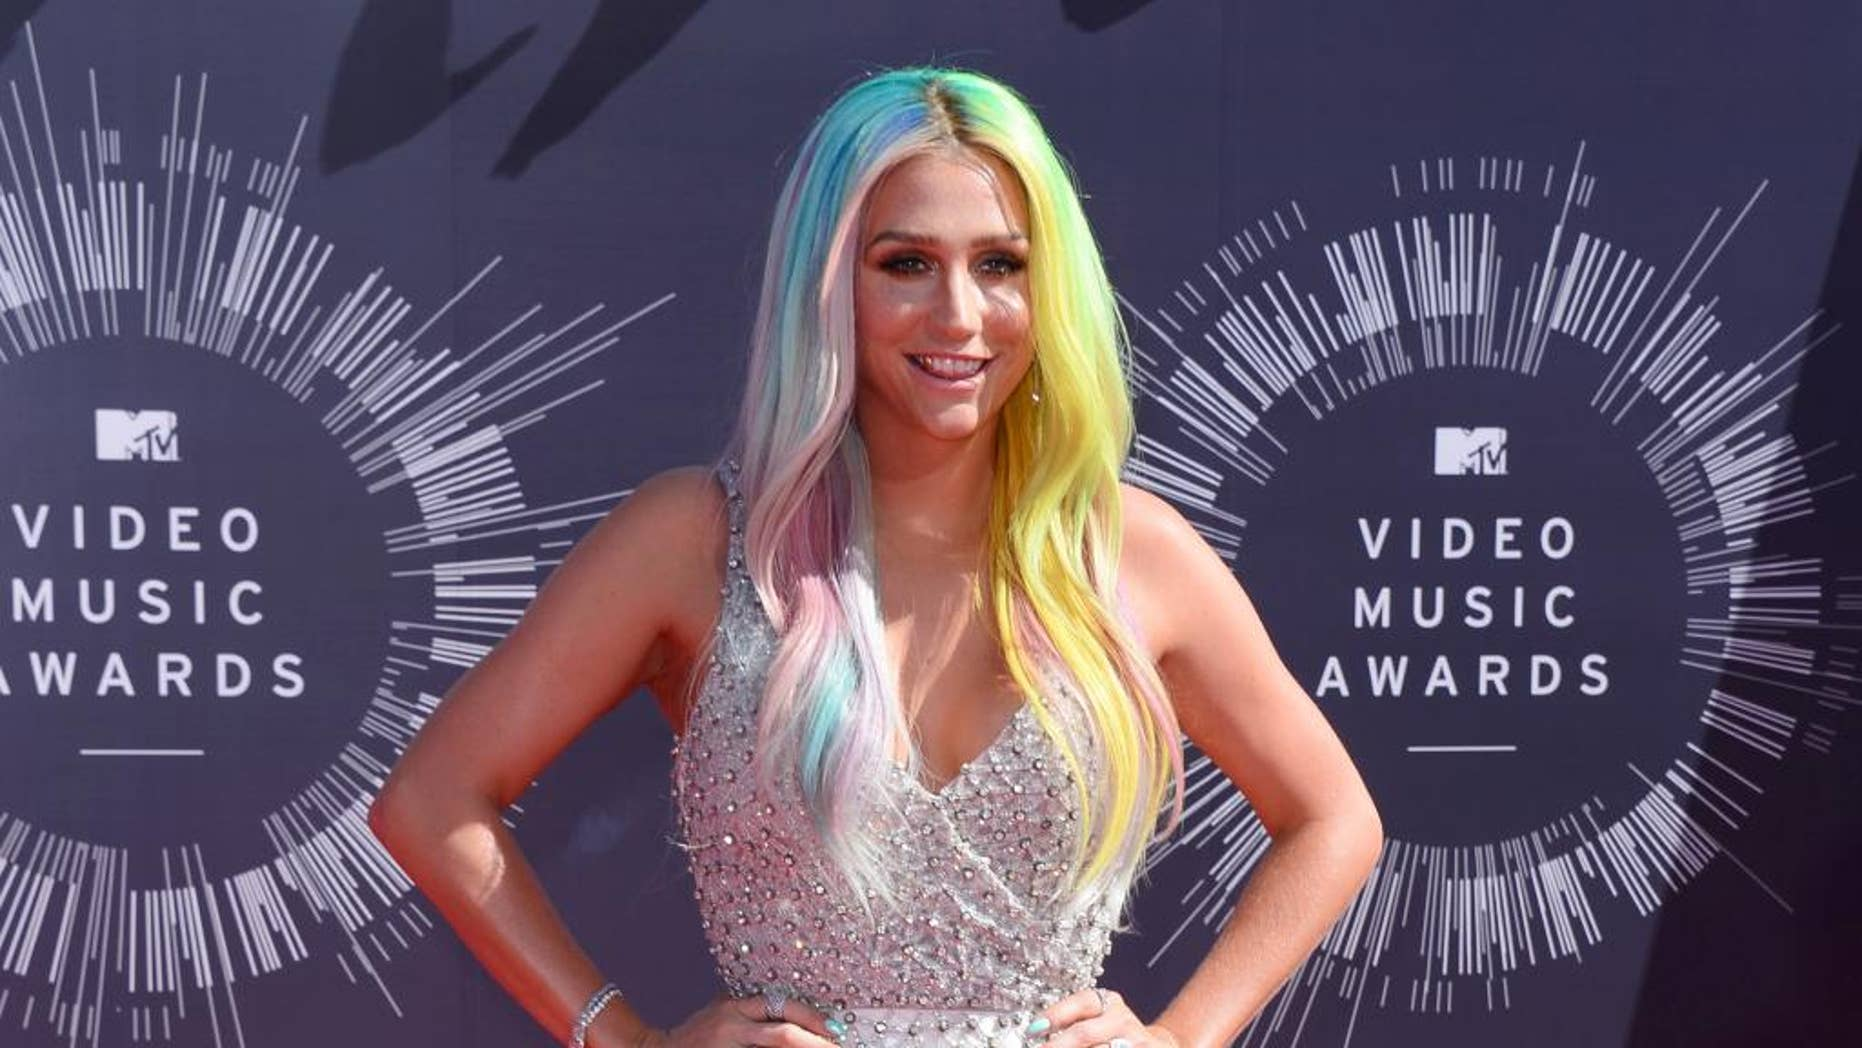 FILE - In this Aug. 24, 2014 file photo, Kesha arrives at the MTV Video Music Awards at The Forum in Inglewood, Calif. Attorneys for music producer Lukasz Gottwald, known professionally as Dr. Luke, filed a motion in Los Angeles Superior Court on Monday, Nov. 17, 2014, seeking the dismissal of claims made by the pop singer, Kesha, that she was raped by her mentor. Gottwald's filings argue that the claims are barred by the statue of limitations. (Photo by Jordan Strauss/Invision/AP, File)